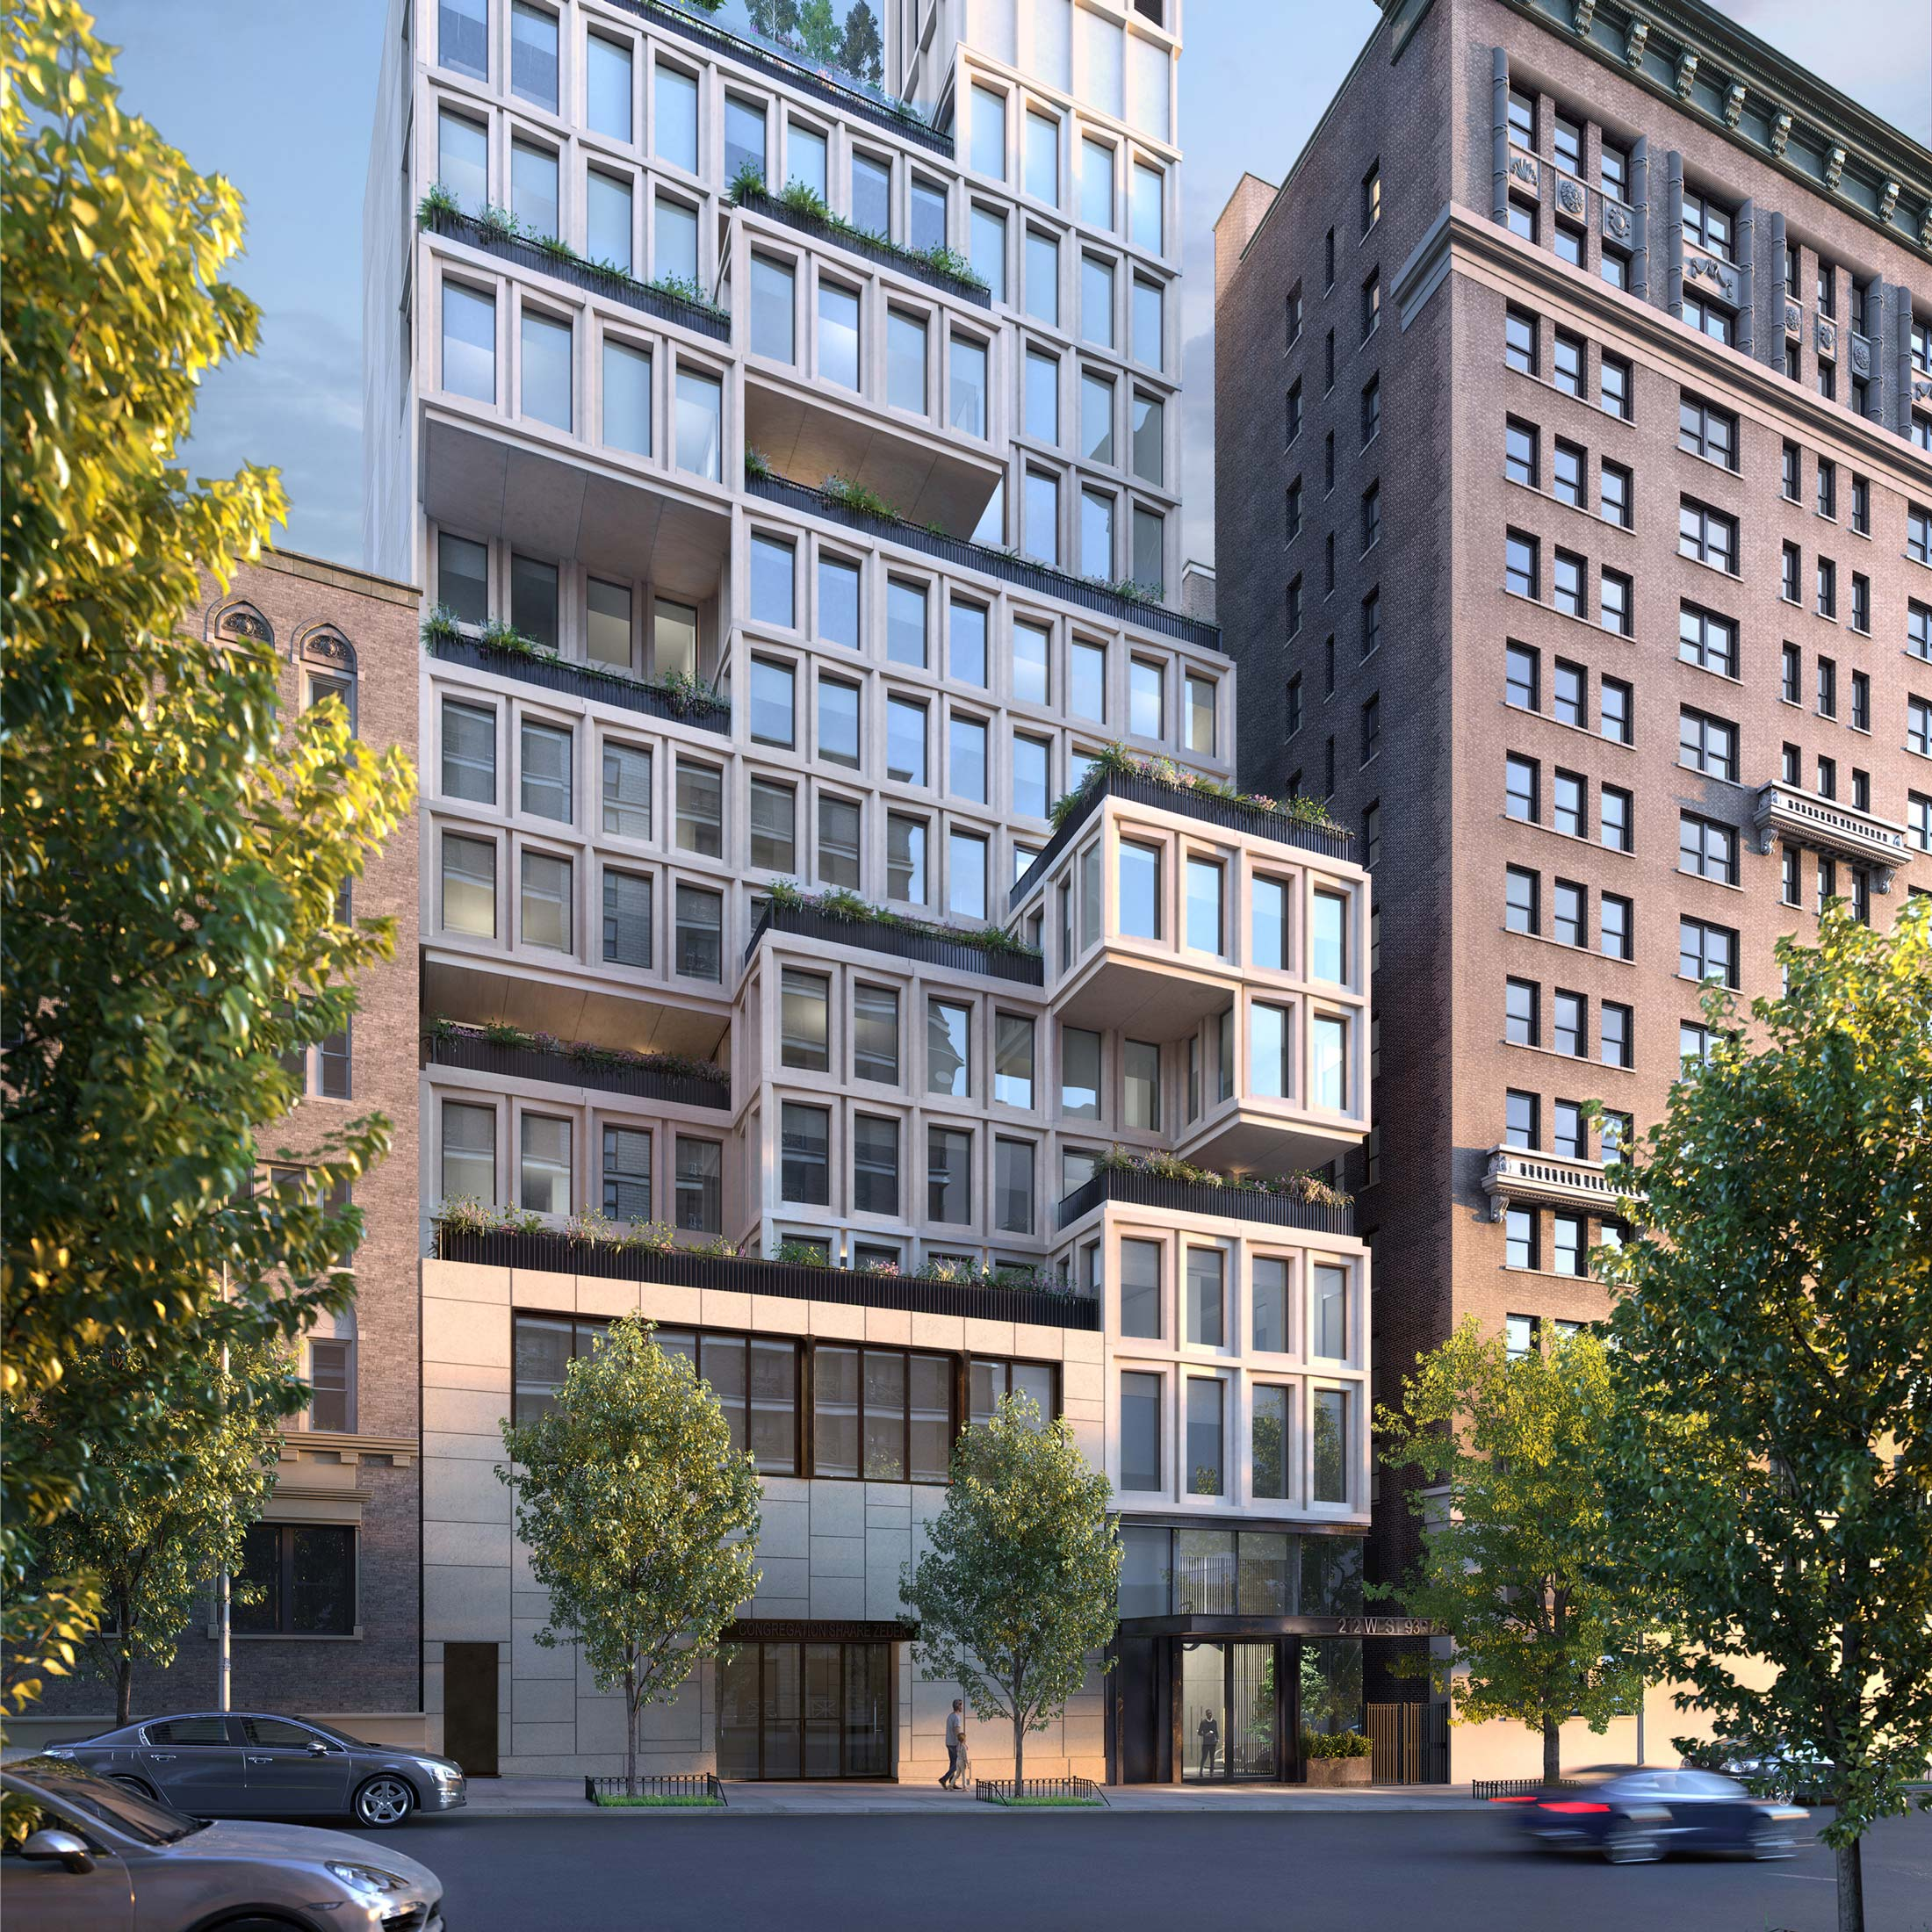 Architectural Rendering of the exterior of the 212W93 project located on the Upper West Side, New York City